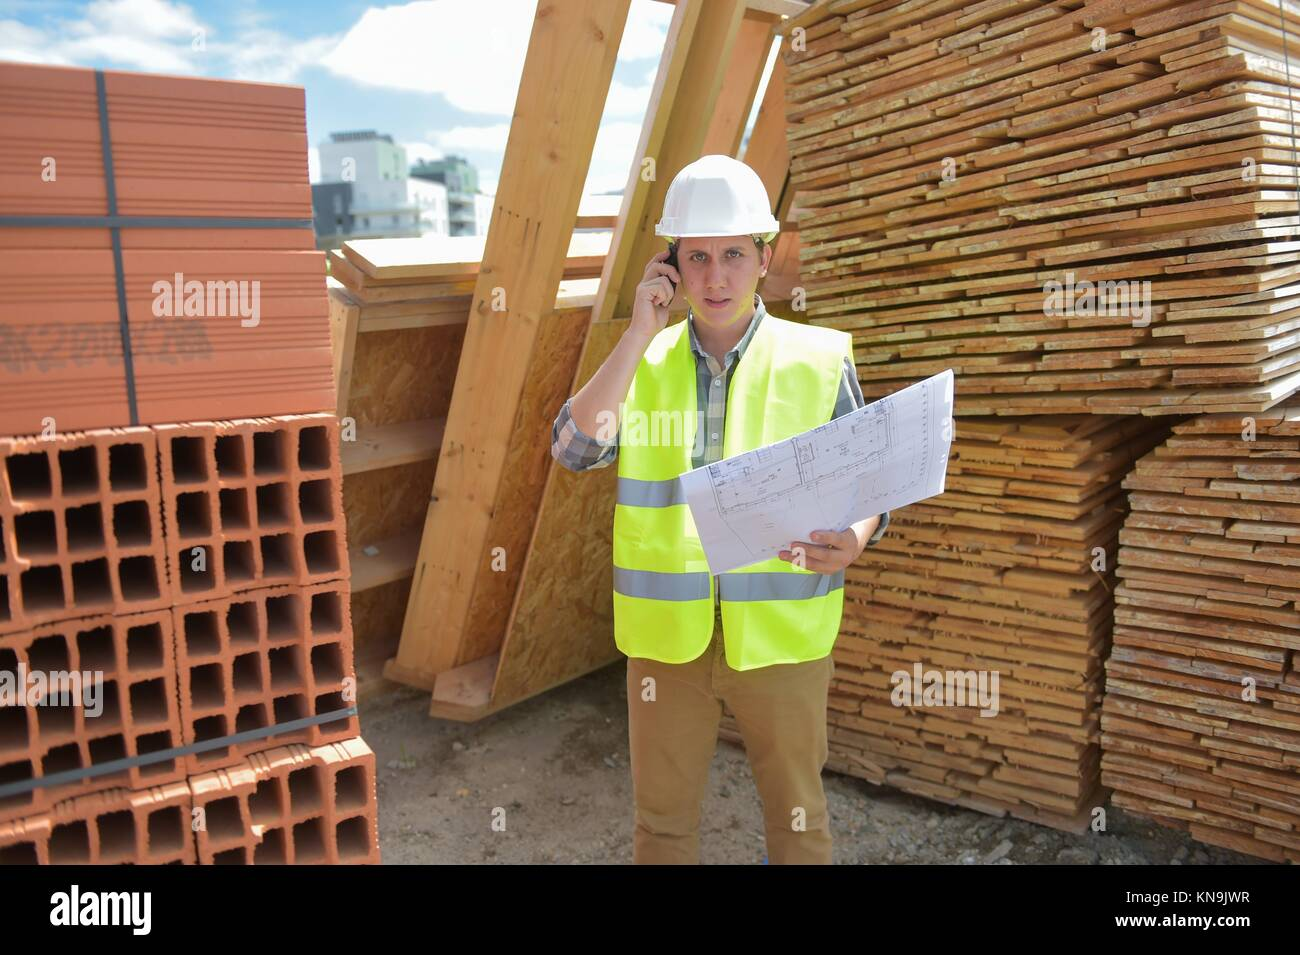 Foreman using walkie-talkie on construction site, France. - Stock Image